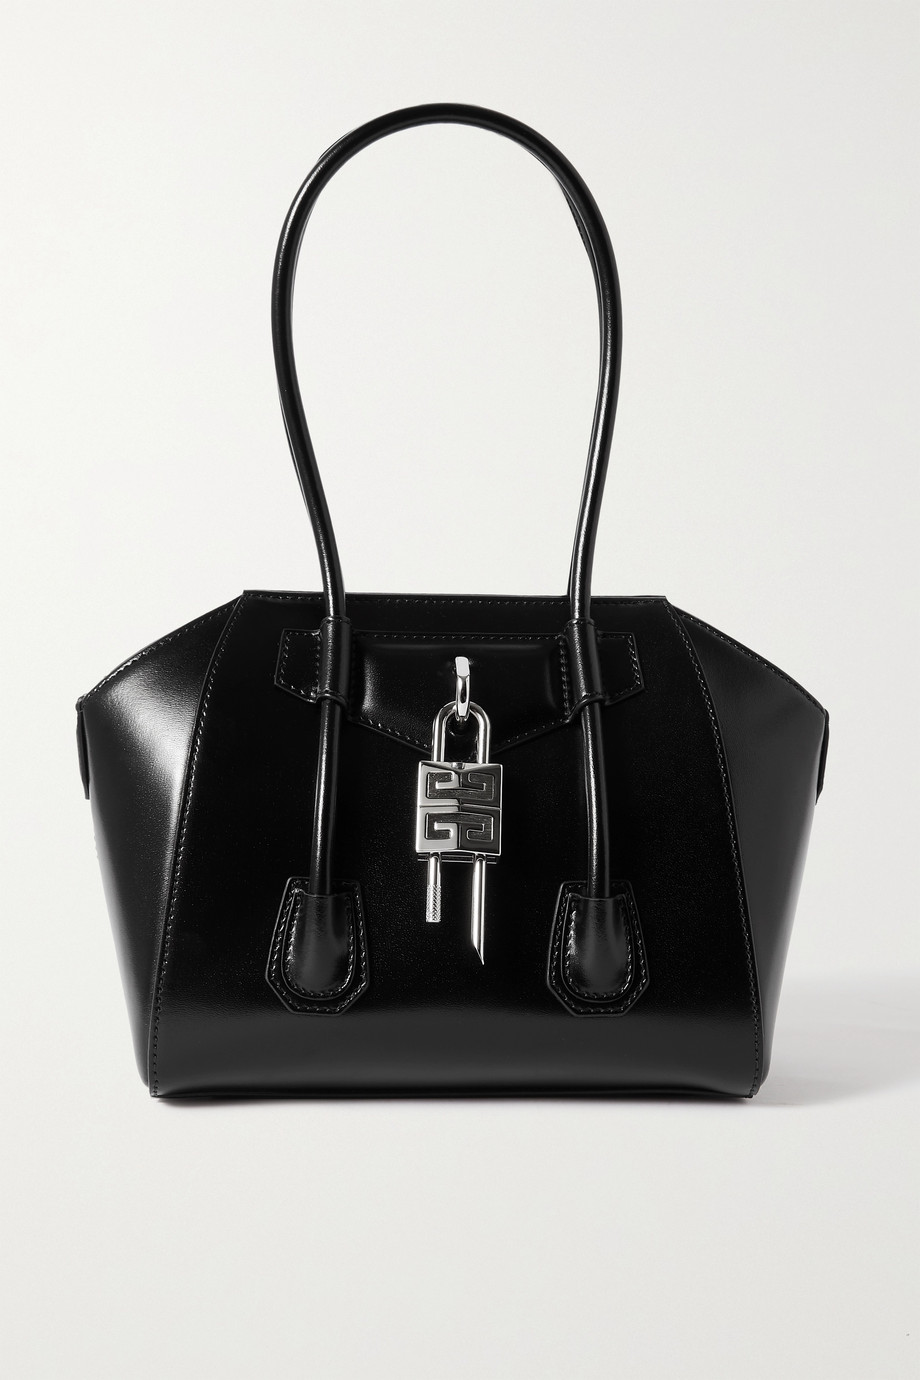 GIVENCHY Antigona Lock small leather tote